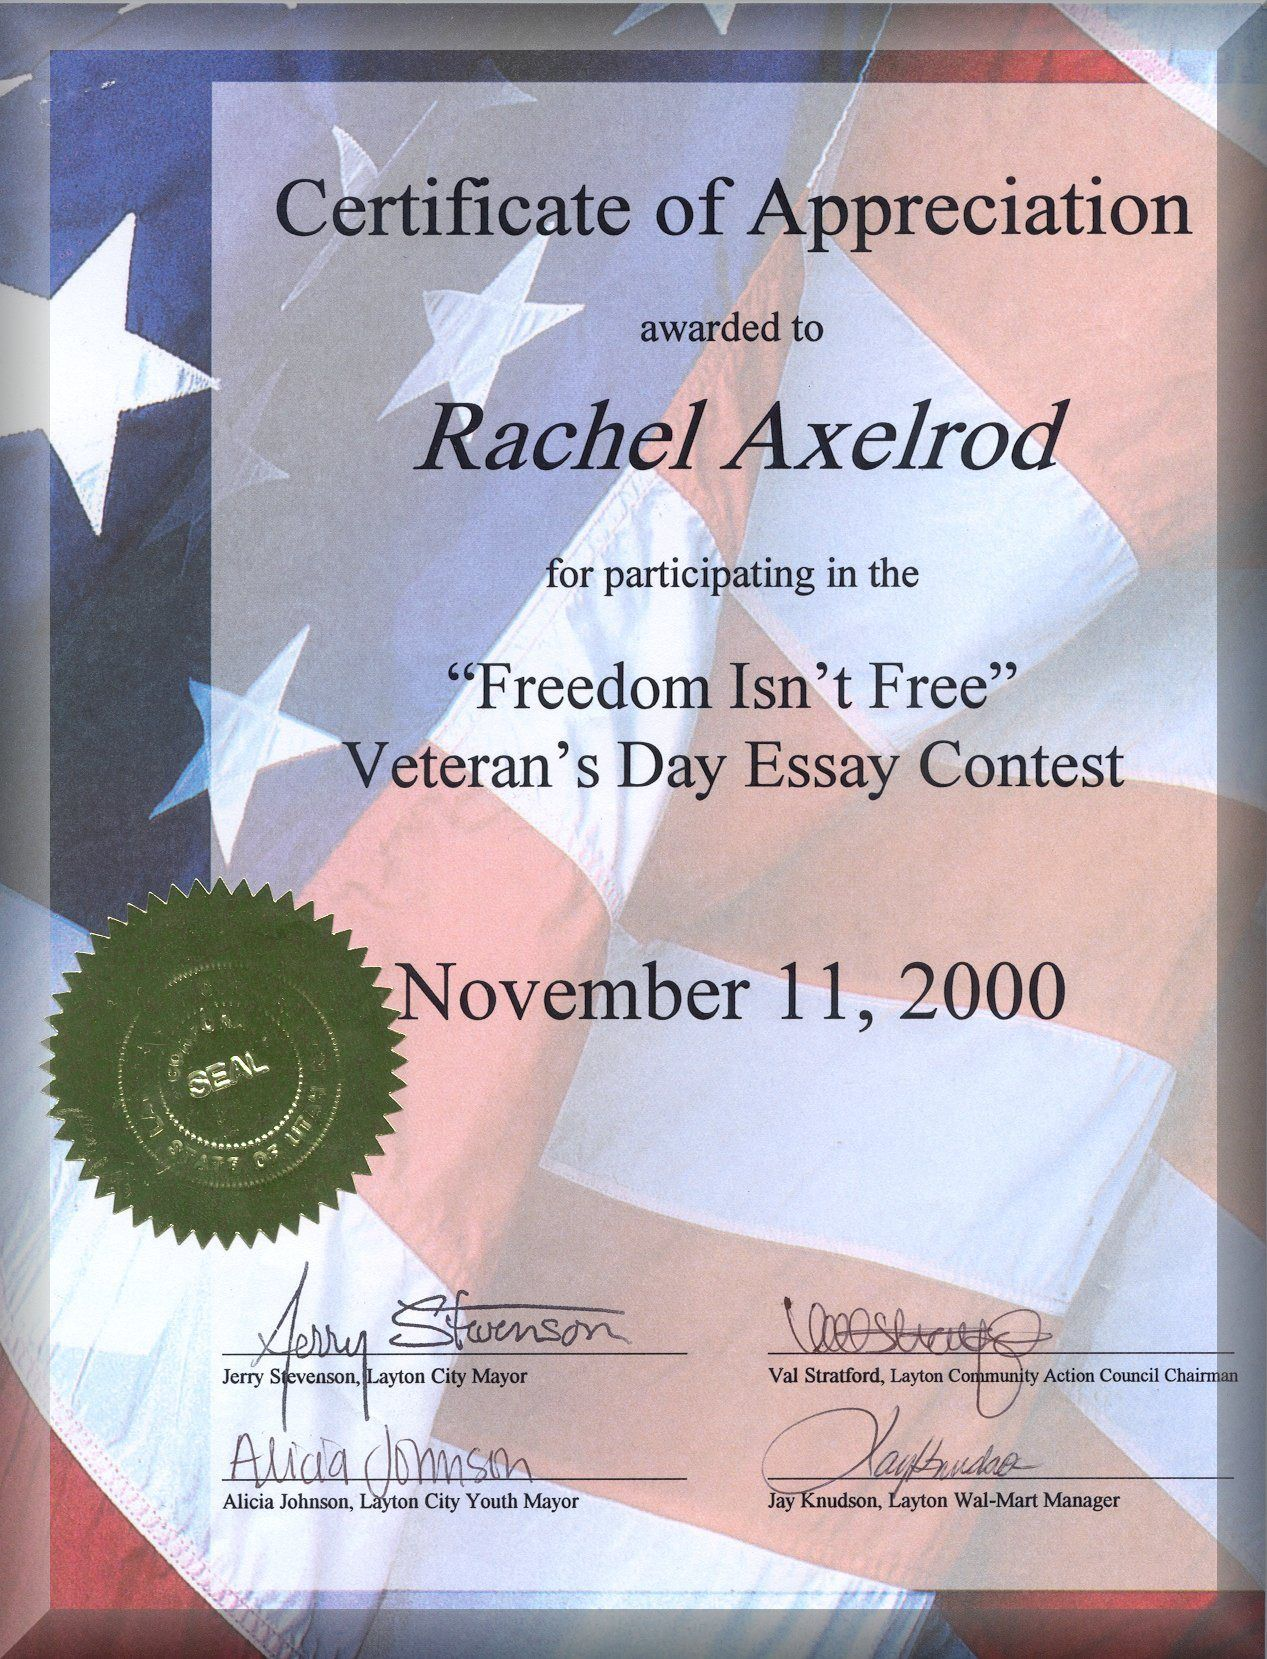 Veteran certificate of appreciation printable related pictures veteran certificate of appreciation printable related pictures award free award certificate templates pictures yadclub Images